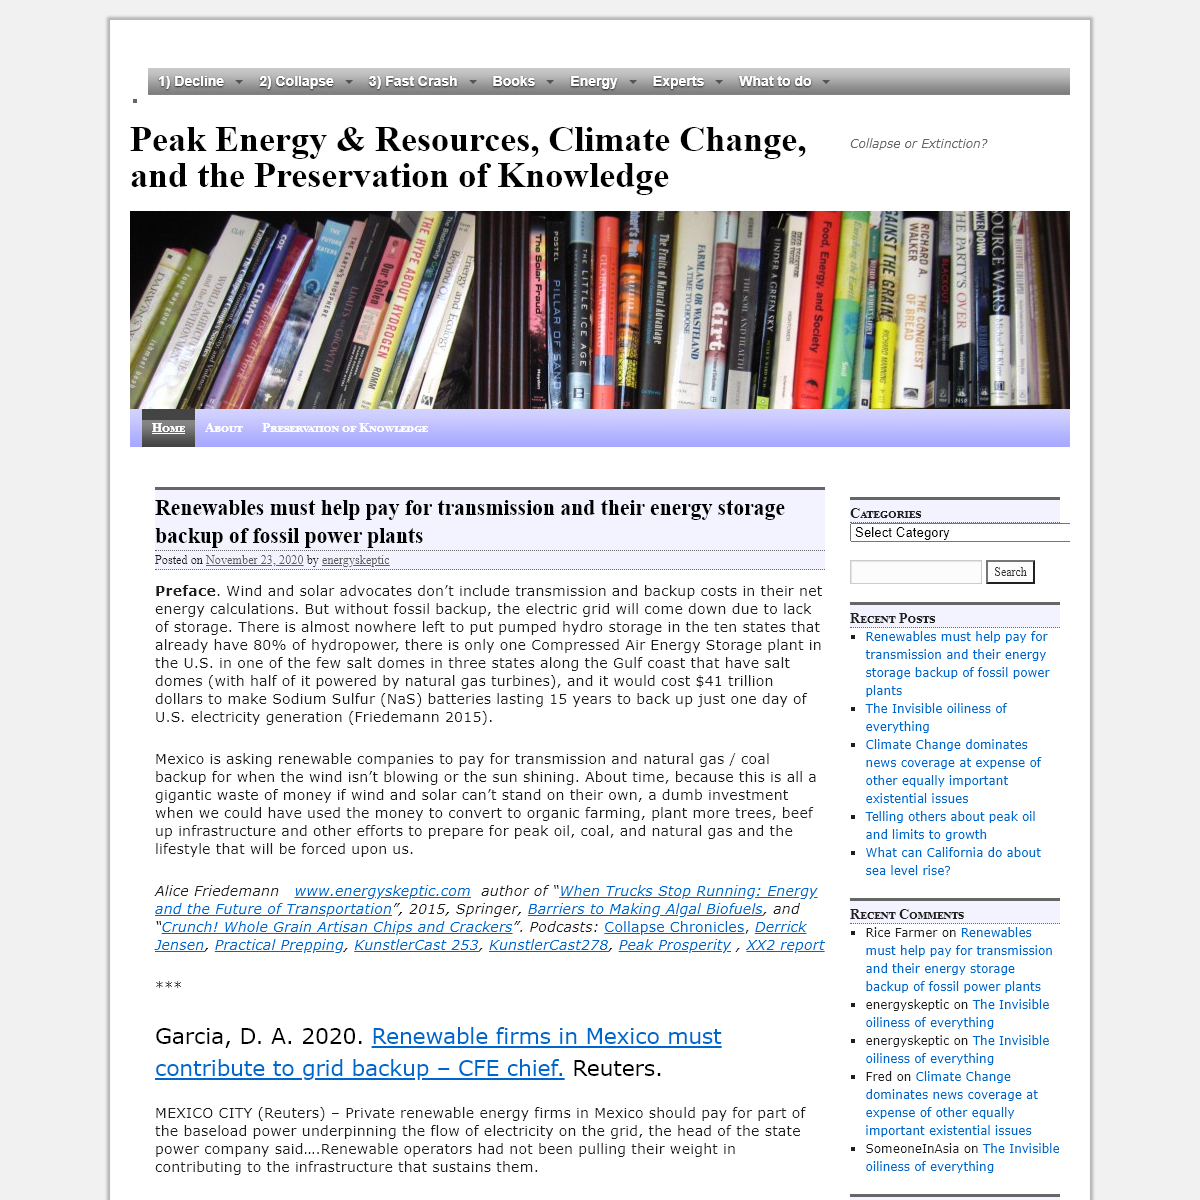 Peak Energy & Resources, Climate Change, and the Preservation of Knowledge - Collapse or Extinction-